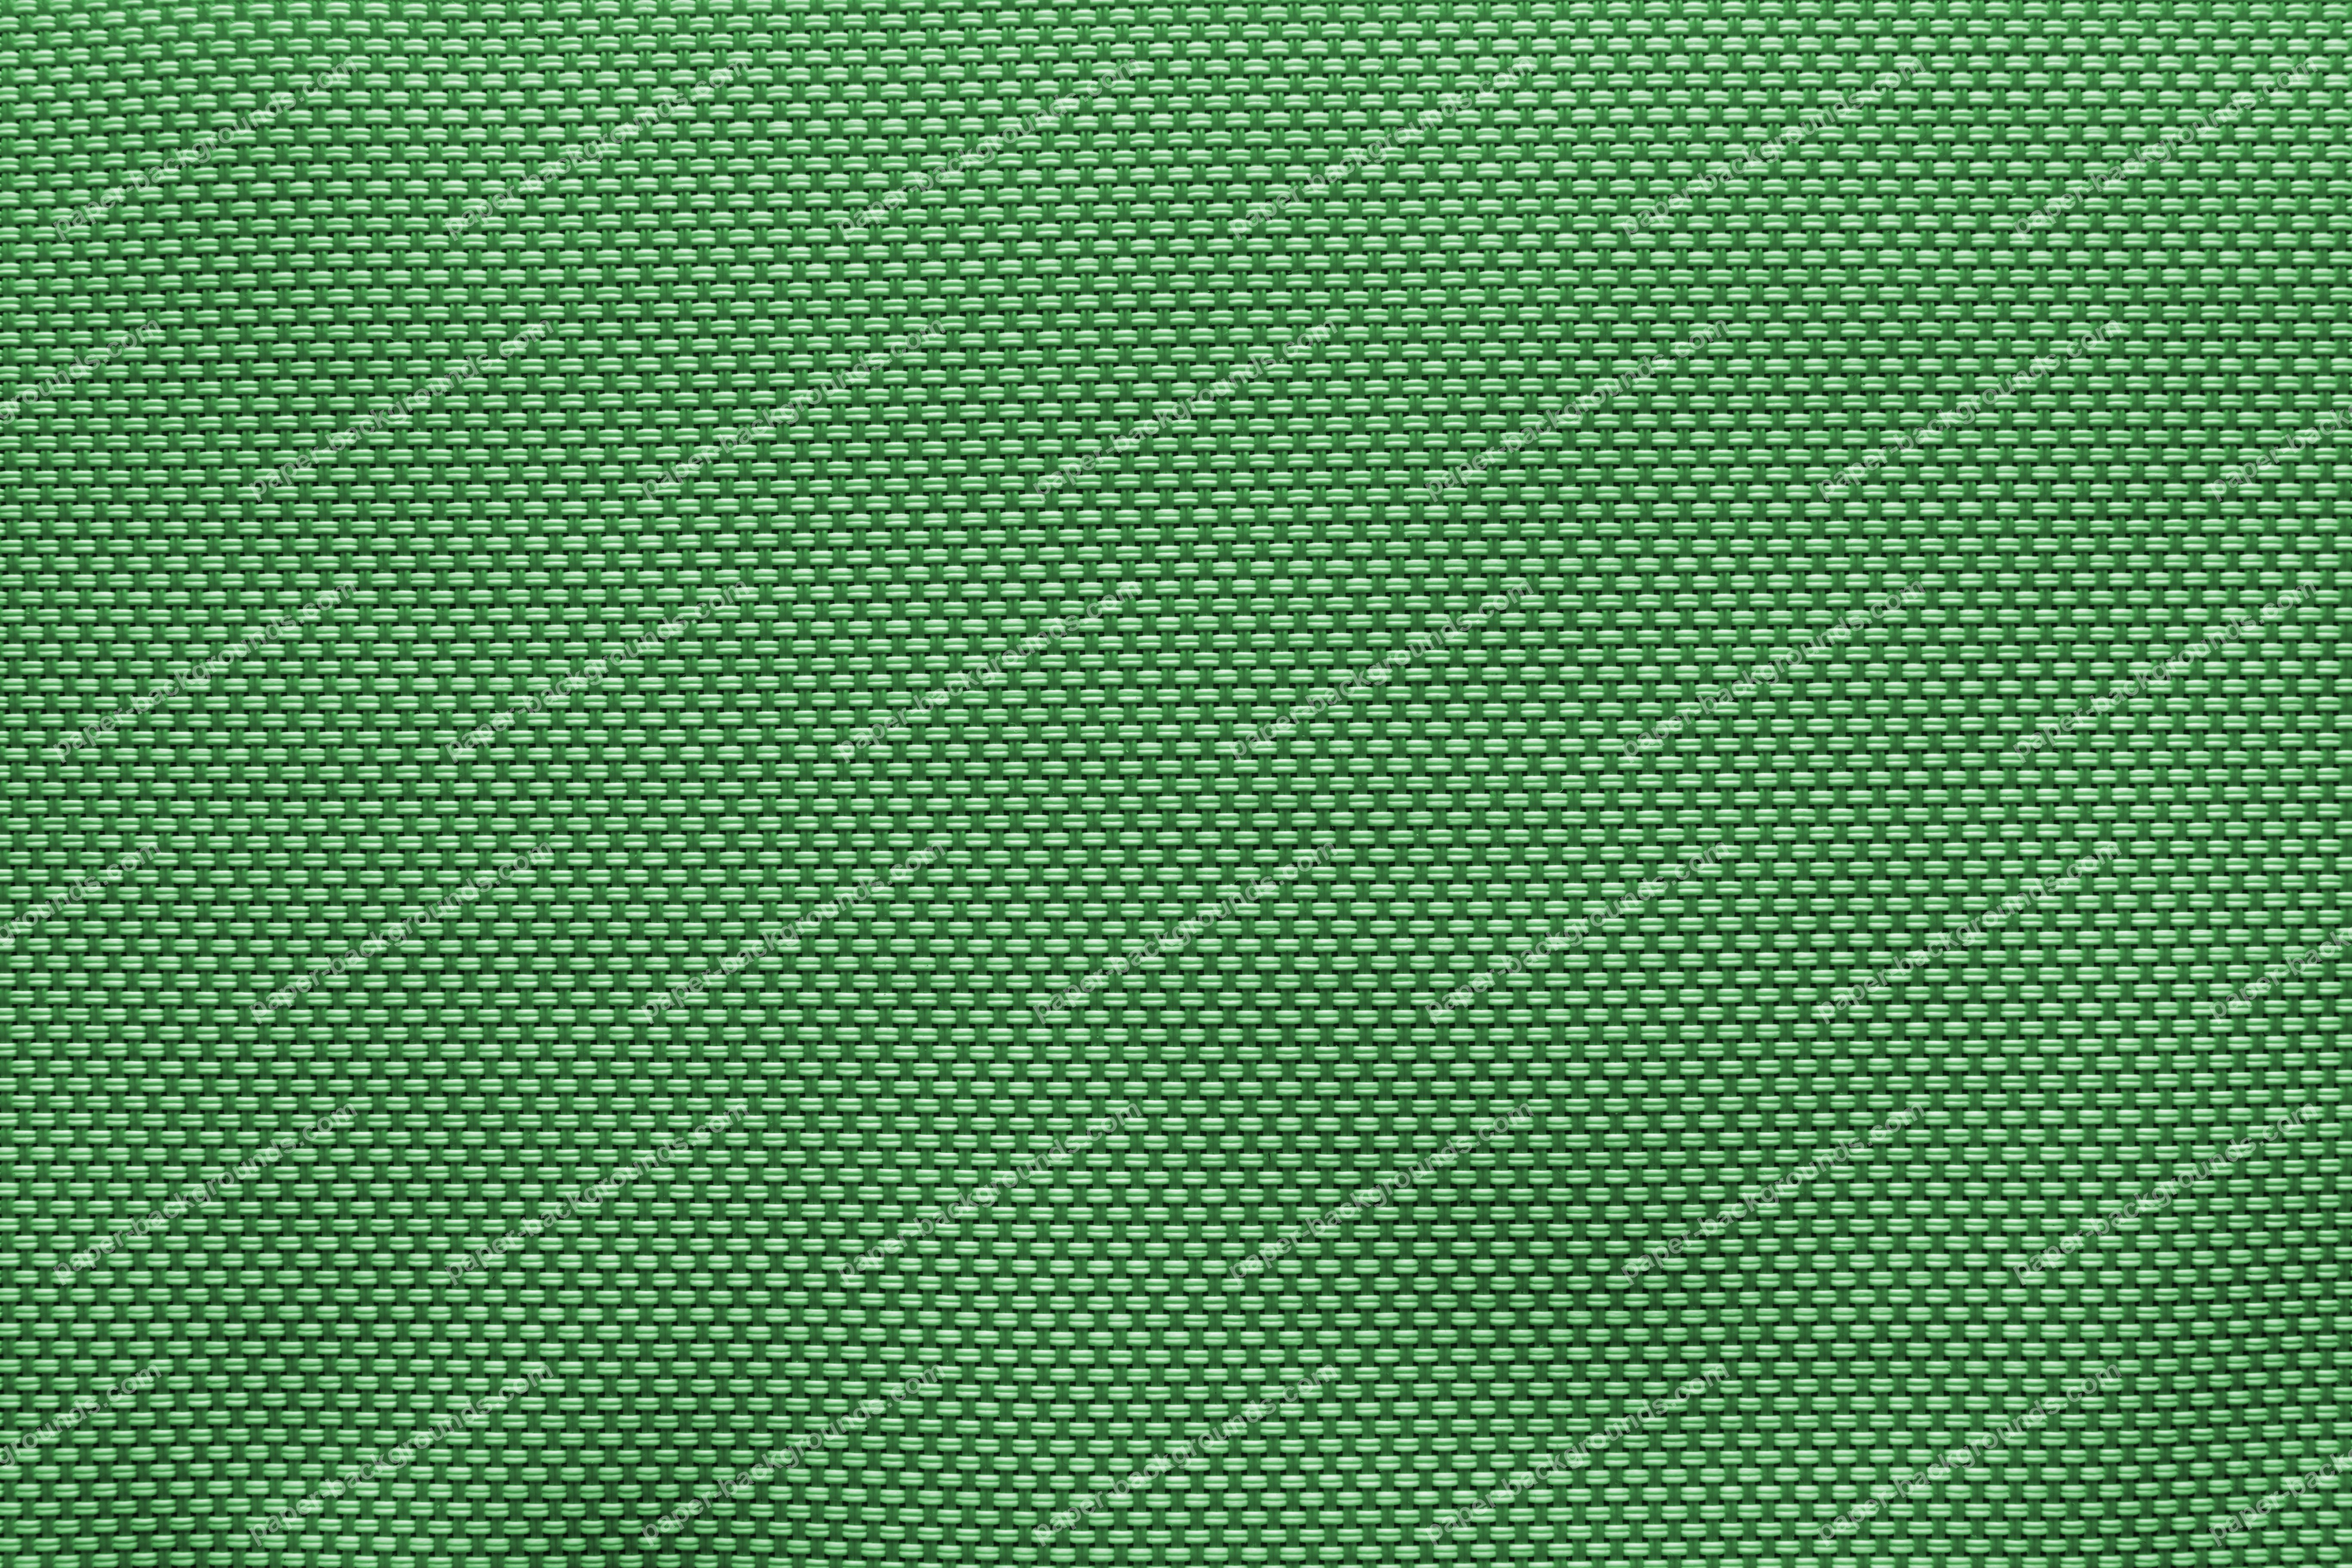 Paper Backgrounds Chequered Green Squares Canvas Texture